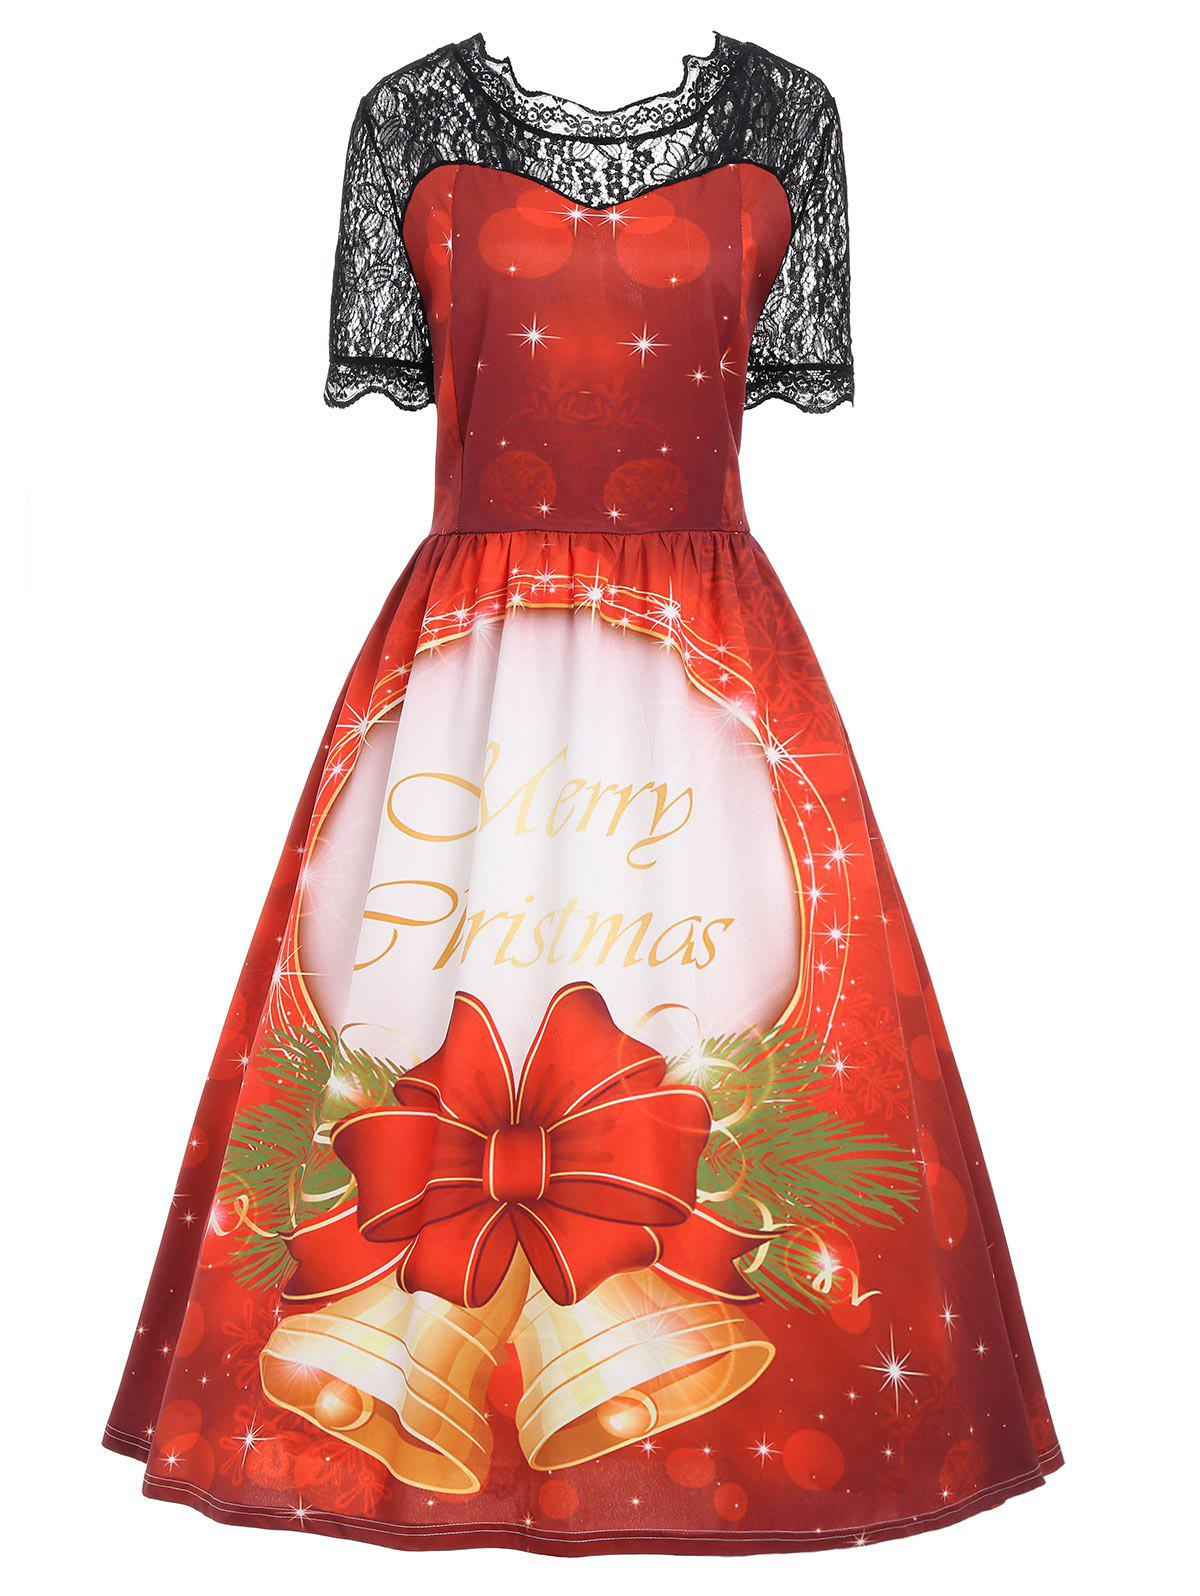 Christmas Bell Vintage Lace Panel Plus Size DressWOMEN<br><br>Size: 4XL; Color: RED; Style: Vintage; Material: Polyester; Silhouette: A-Line; Dresses Length: Mid-Calf; Neckline: Round Collar; Sleeve Length: Short Sleeves; Pattern Type: Bowknot,Letter; With Belt: No; Season: Fall,Winter; Weight: 0.3350kg; Package Contents: 1 x Dress;